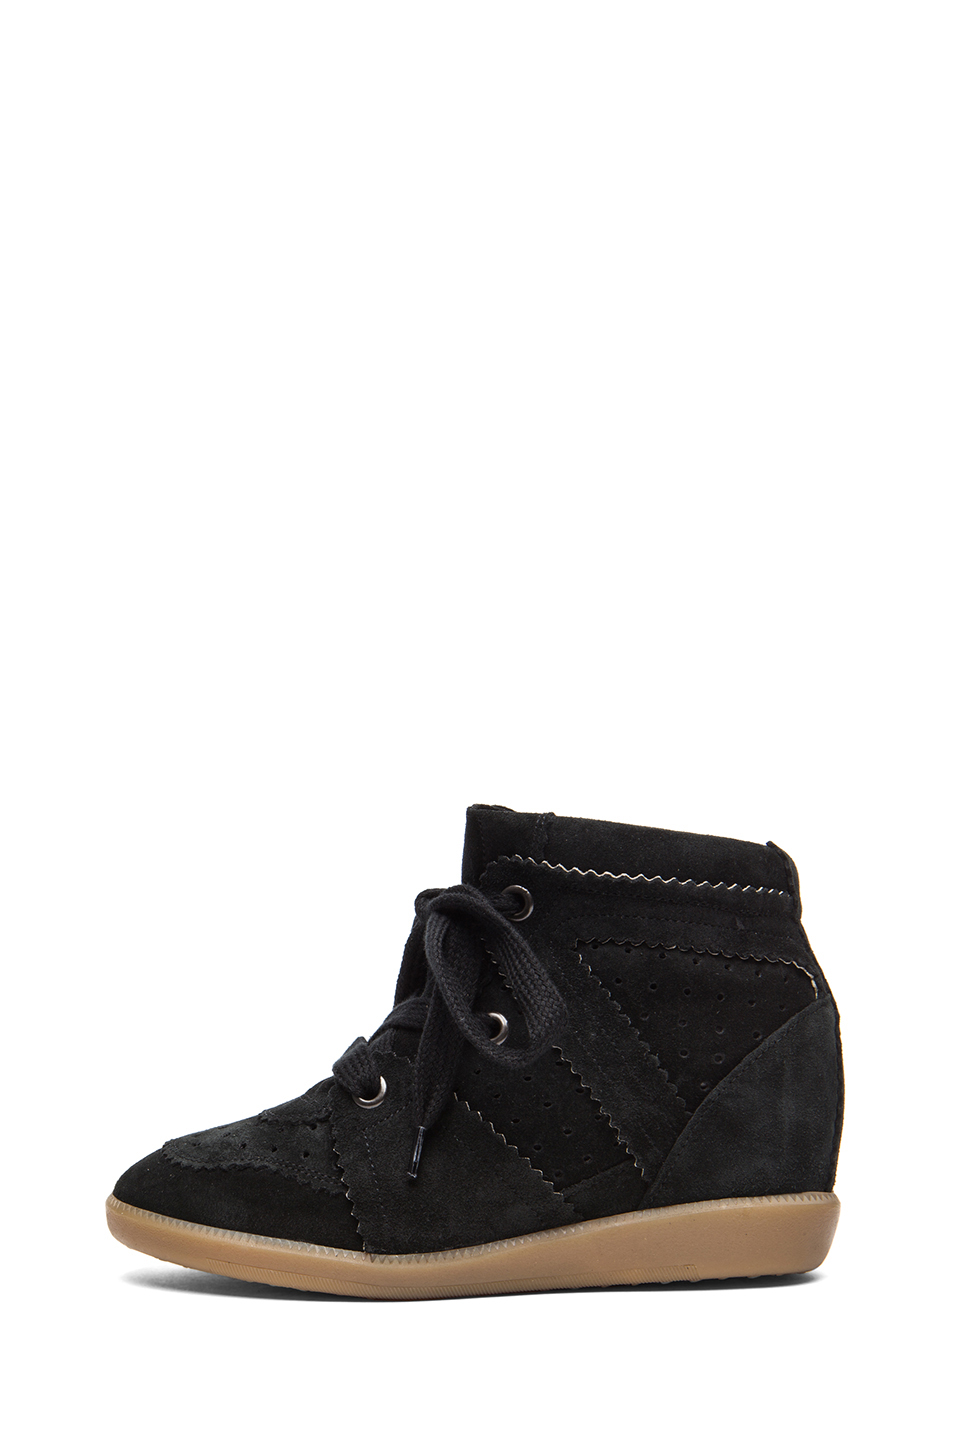 Isabel Marant|Bobby Calfskin Velvet Leather Sneaker in Faded Black